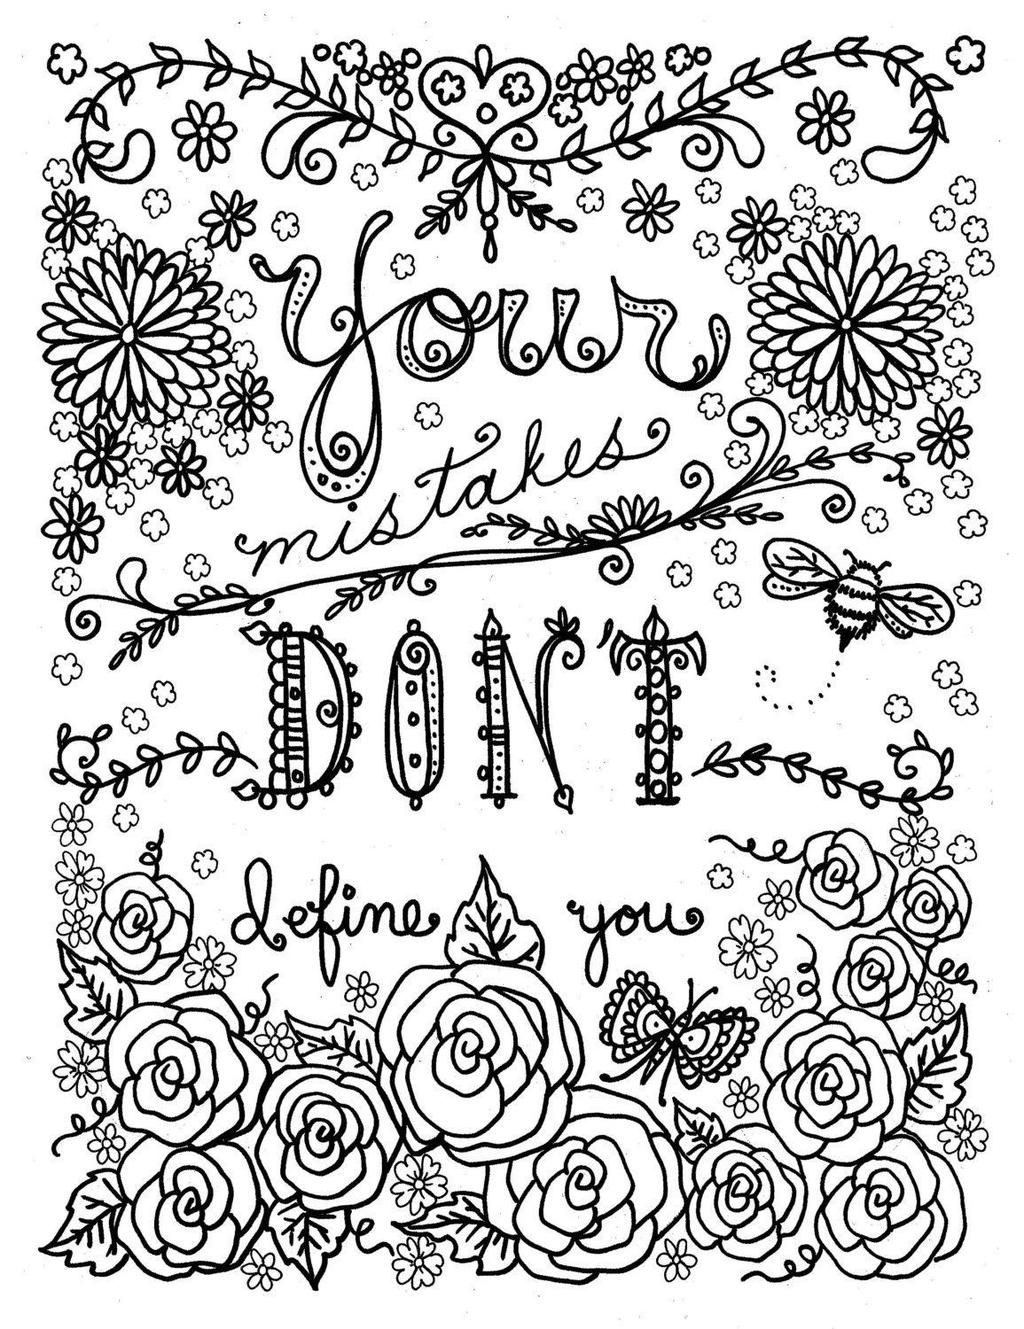 Free Mandala Sayings Coloring Pages for Kids printable